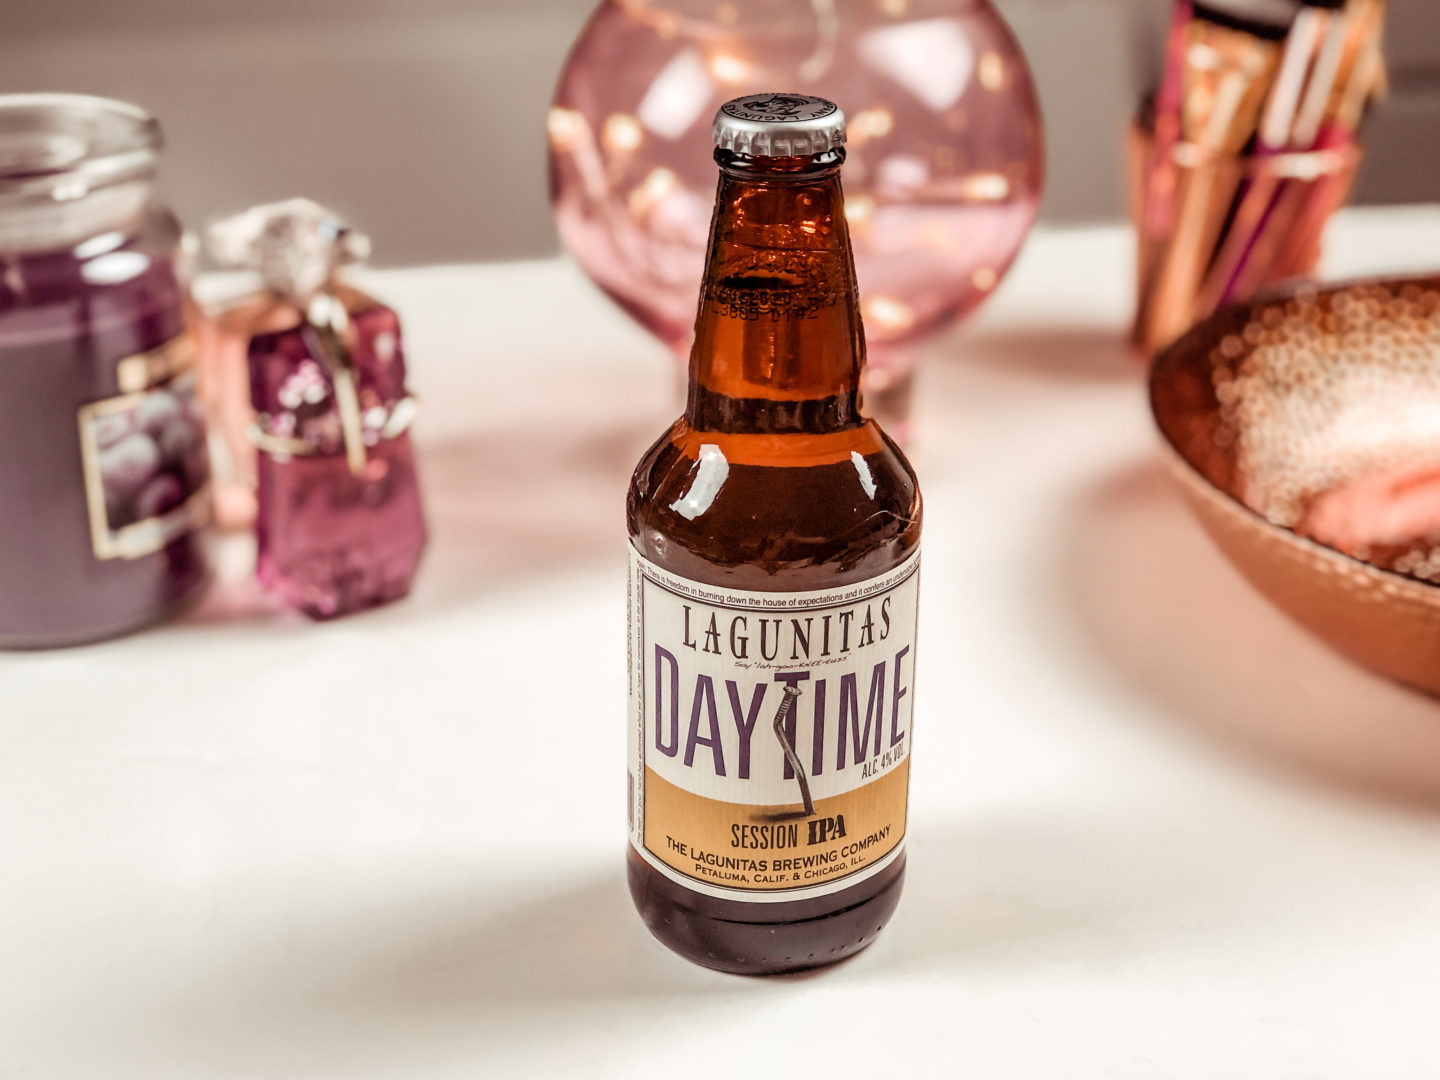 Lagunitas DayTime Session IPA - December 2019 Degusta Box